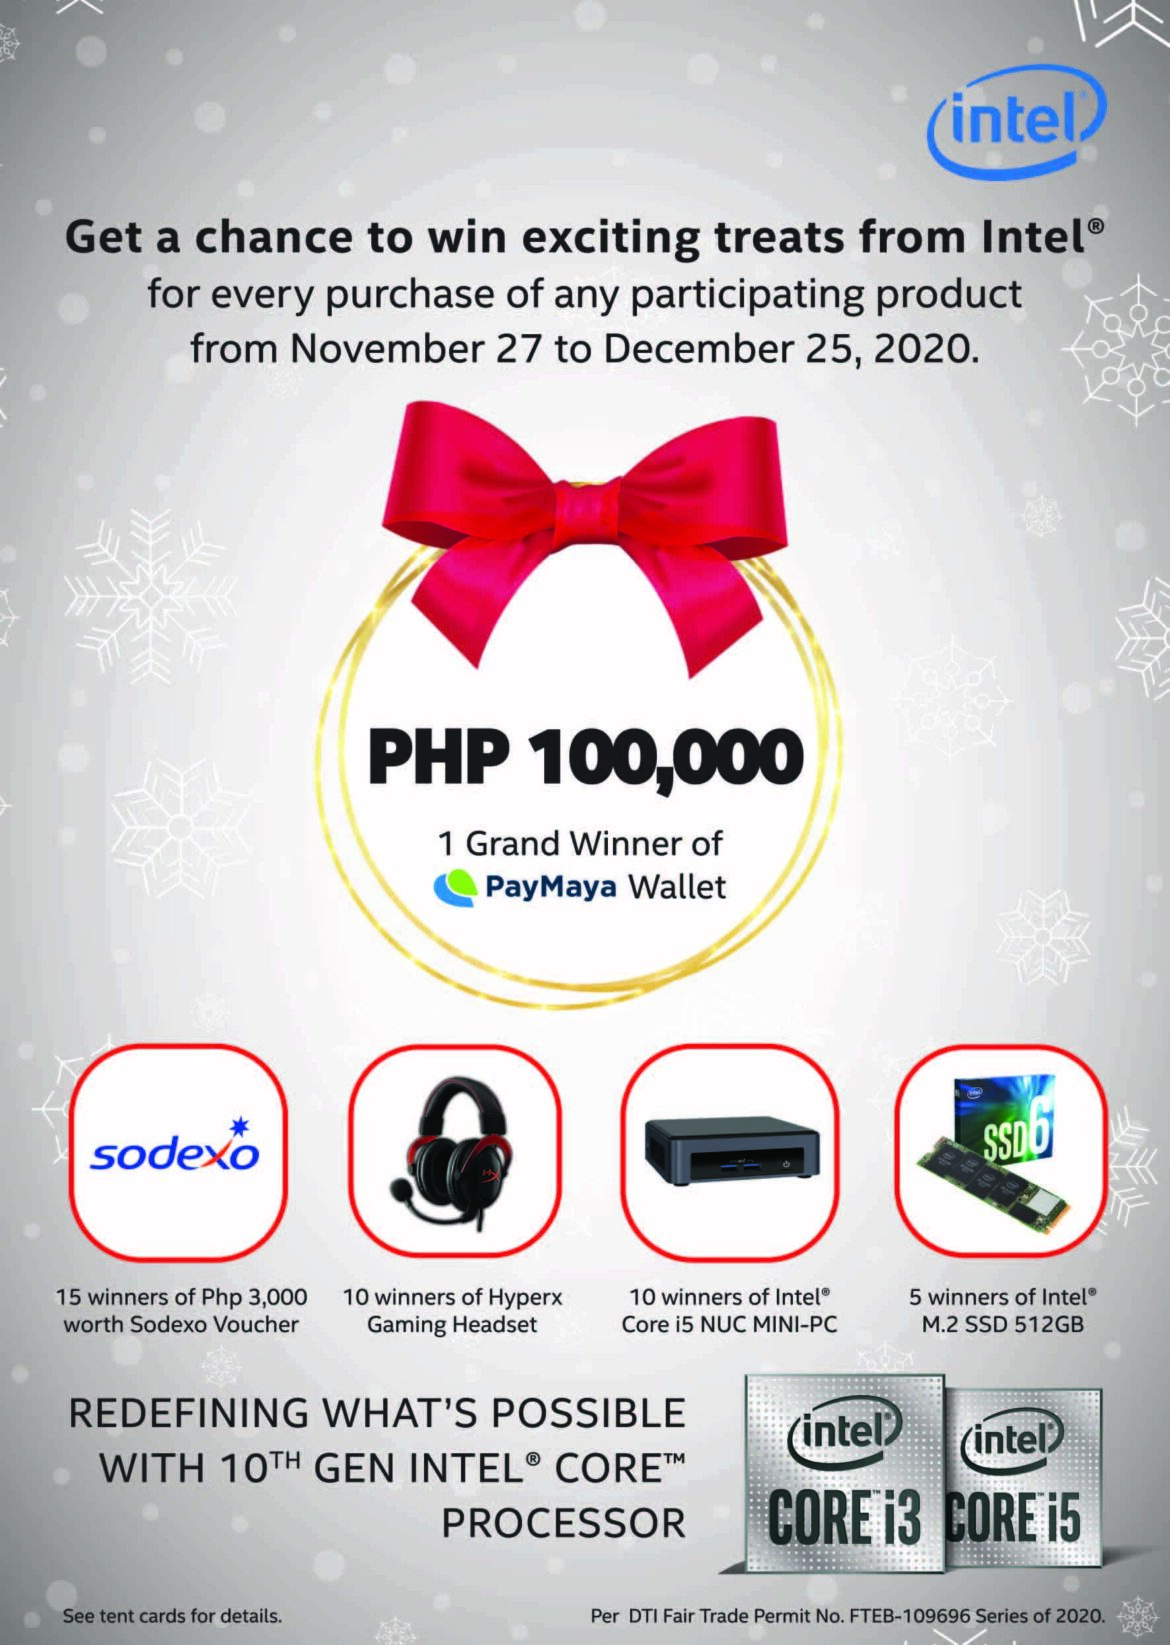 Intel Is Giving Away As Much As Php100,000 and Great Holiday Treats!